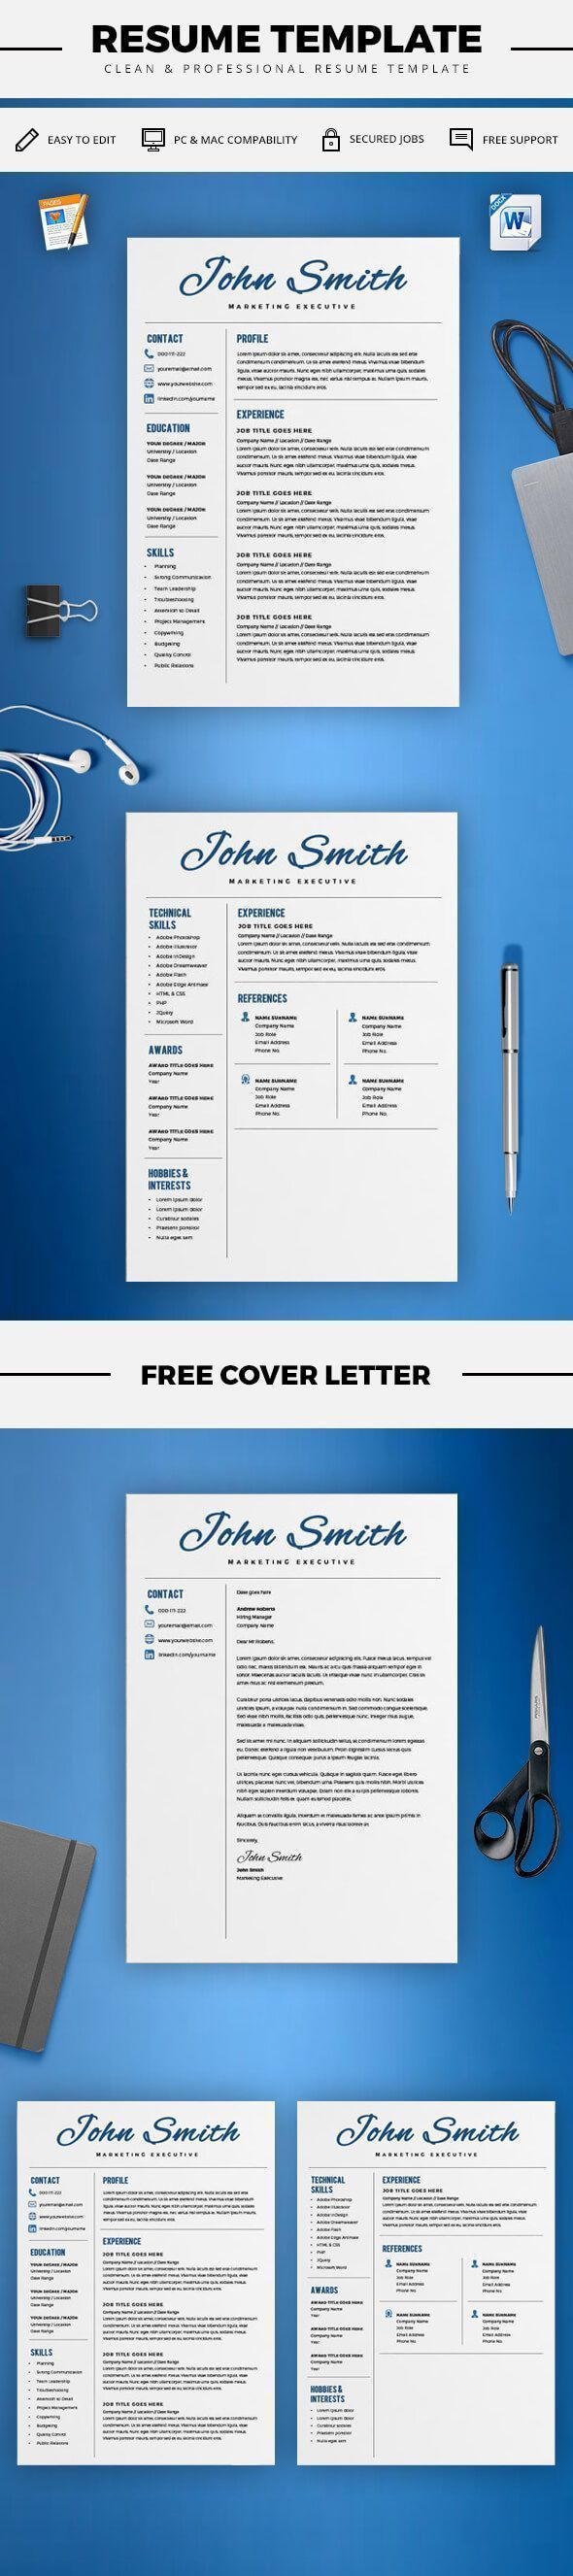 mla cover letter format%0A Best     Best resume ideas on Pinterest   Best resume template  My resume  builder and Words for resume